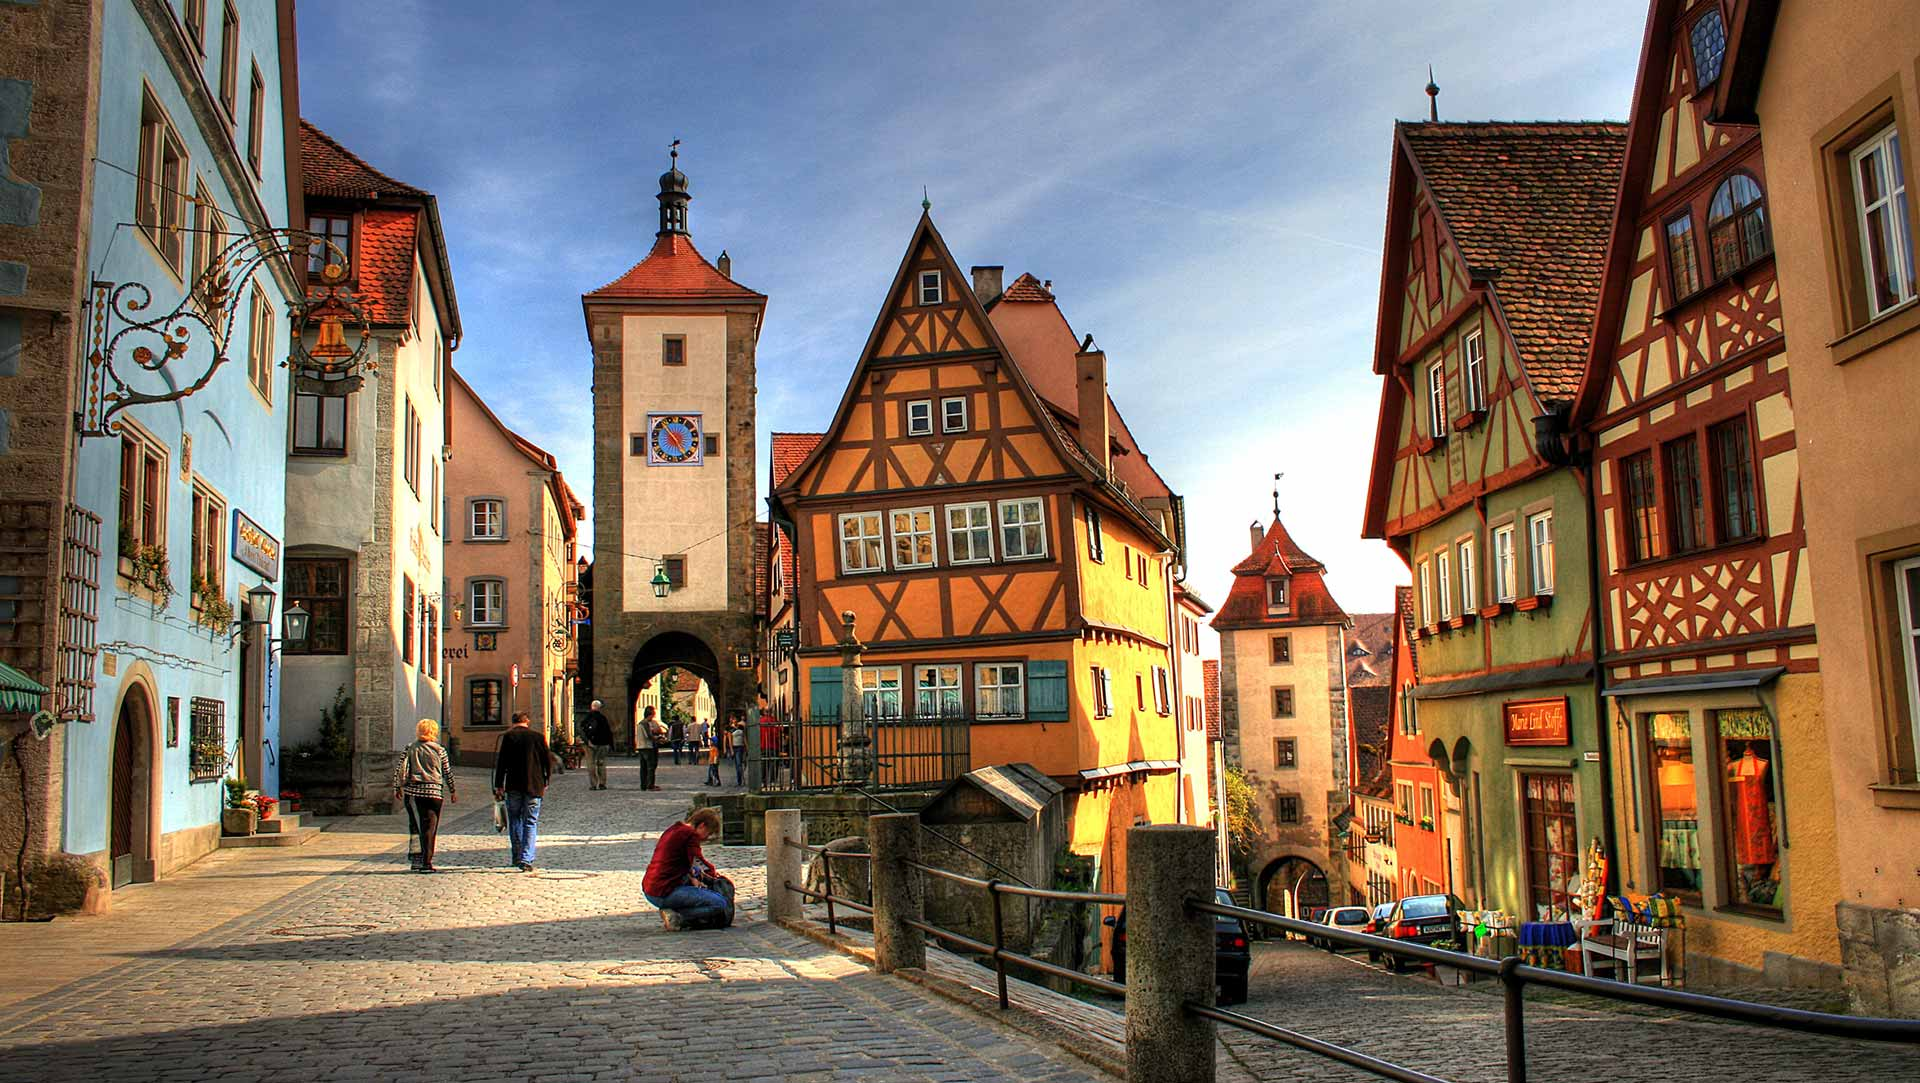 Plönlein is het beroemdste fotomotief in Rothenburg ob der Tauber.